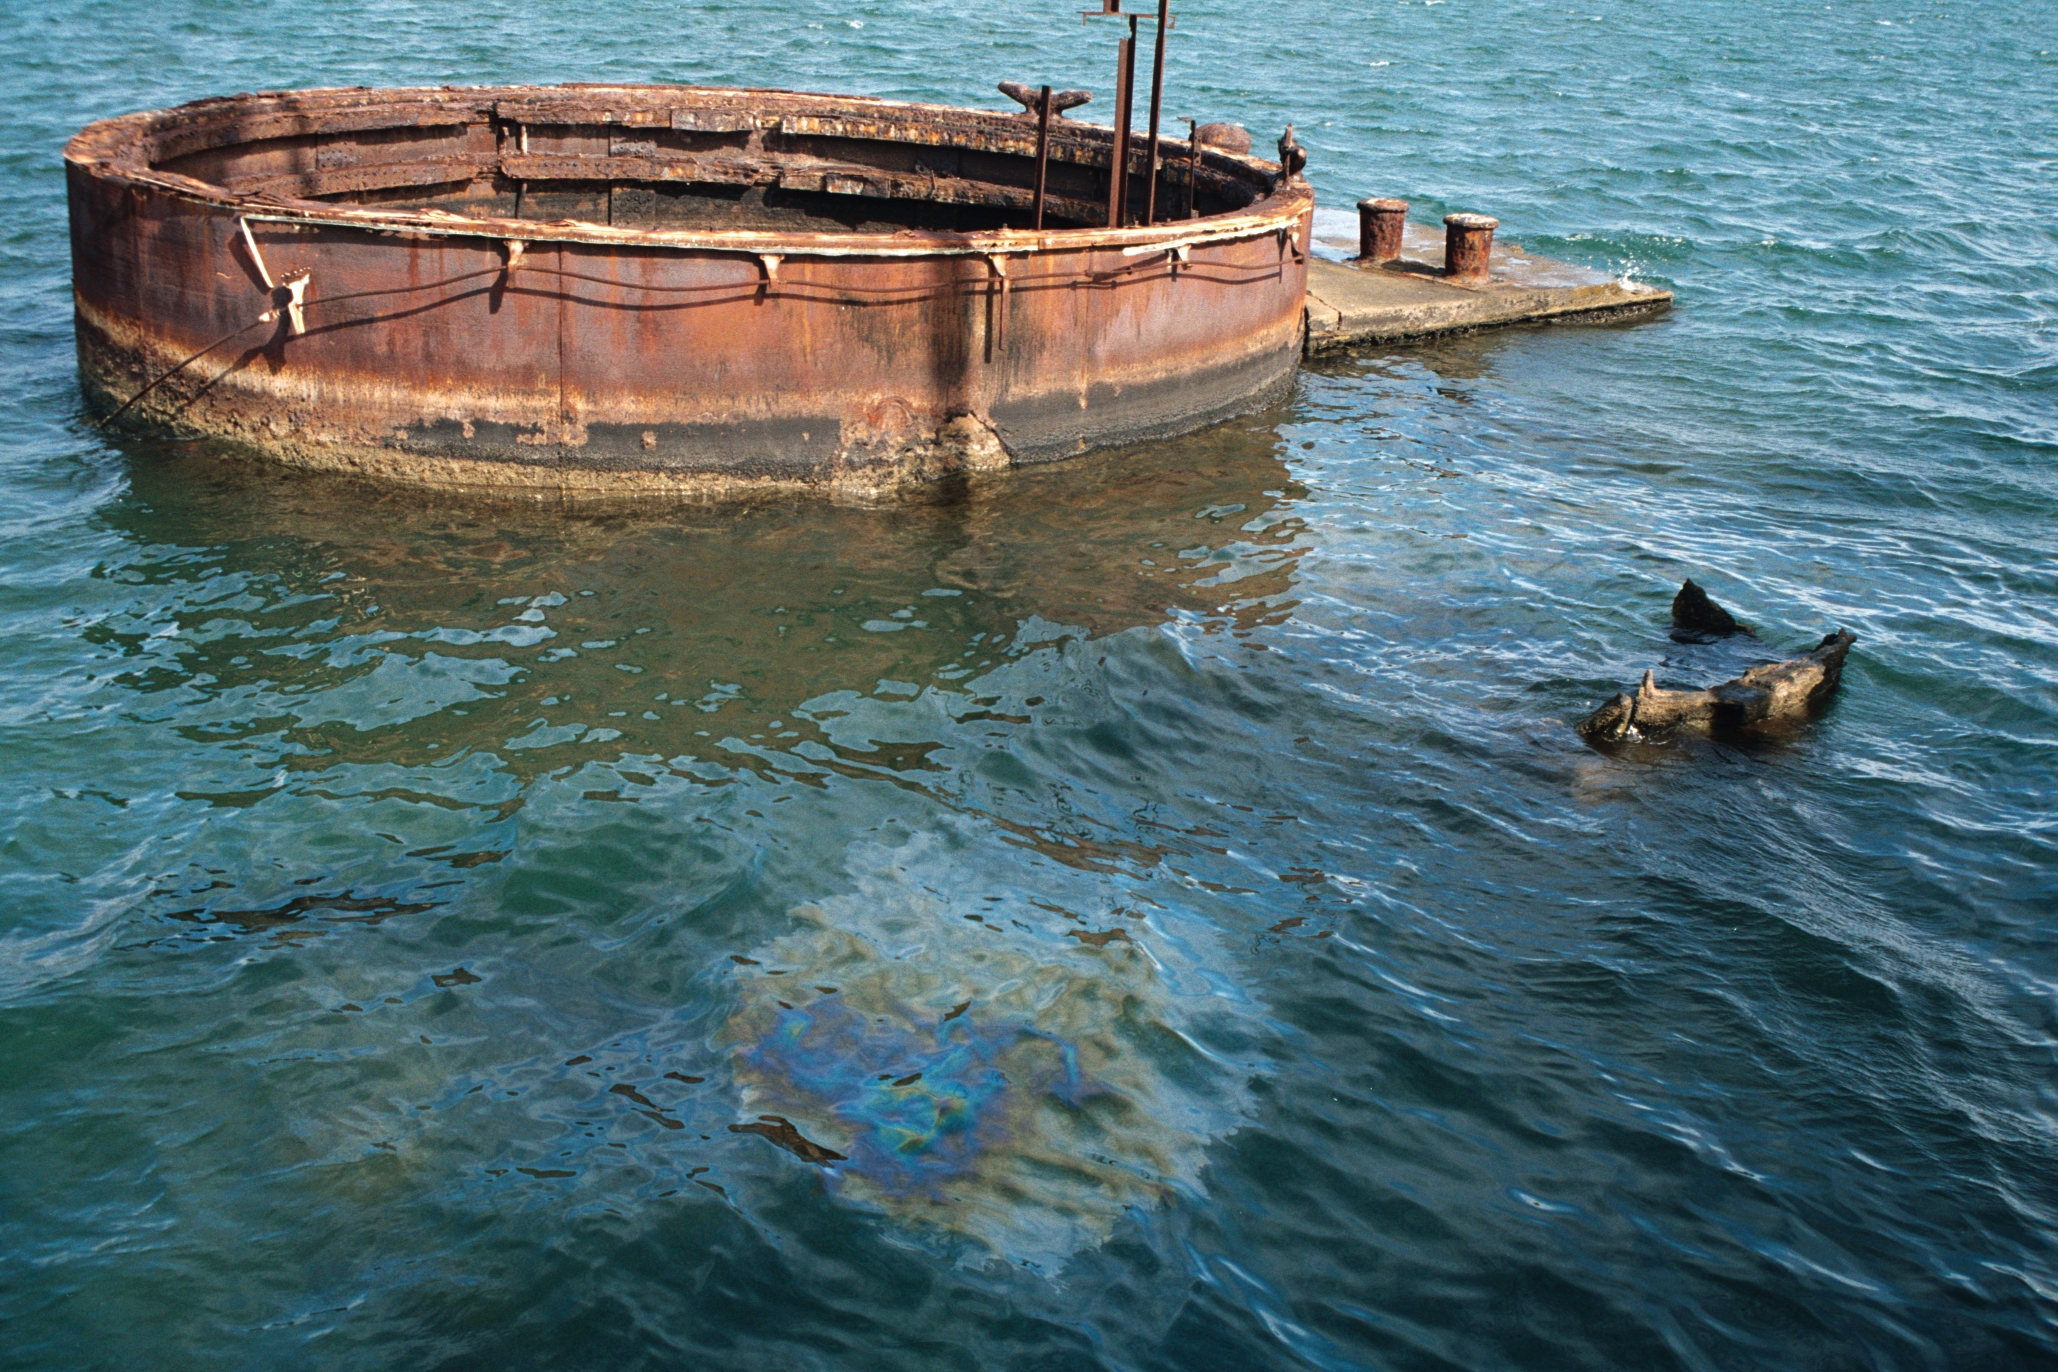 Oil slick visible on water's surface above the sunken battleship USS Arizona in Pearl Harbor, Hawaii. The oil leakage from her fuel tanks continues to the present day and is sometimes called 'The Tears of the Arizona.'